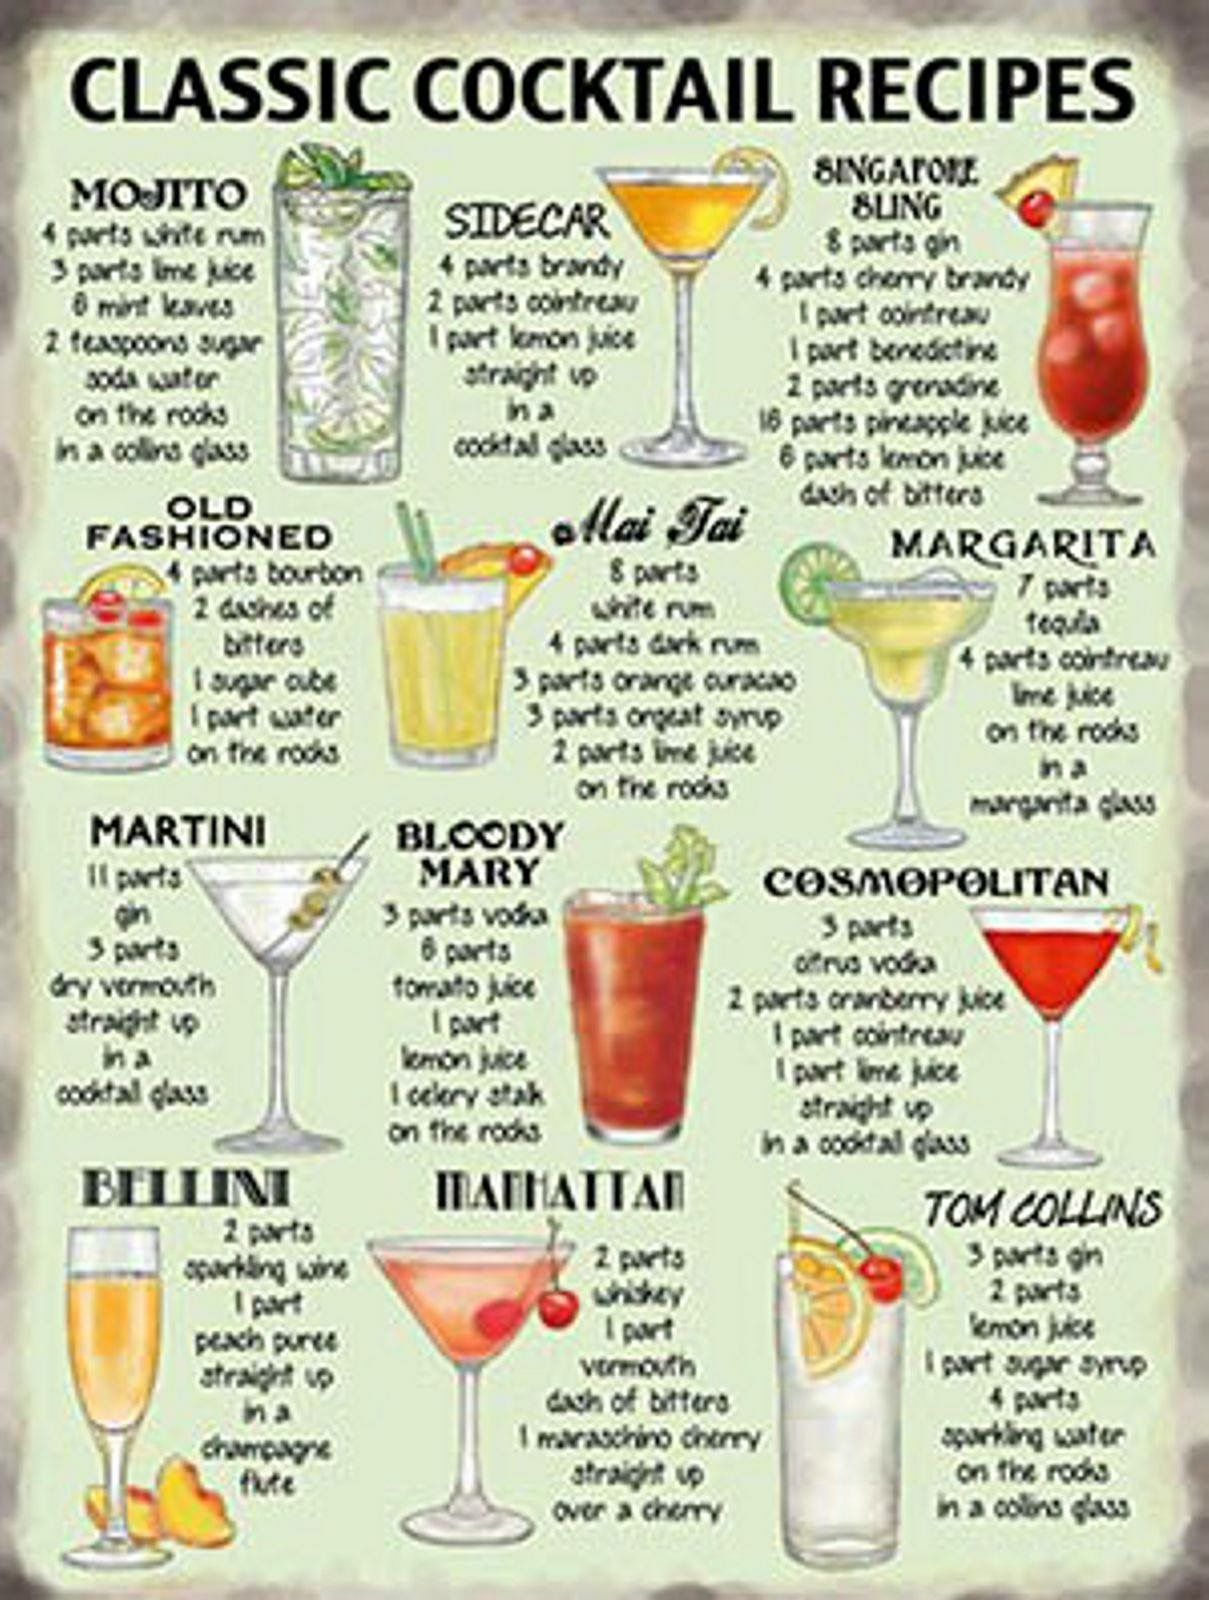 Classic Cocktail Recipes Alcohol Drink Recipes Alcohol Recipes Drinks Alcohol Recipes